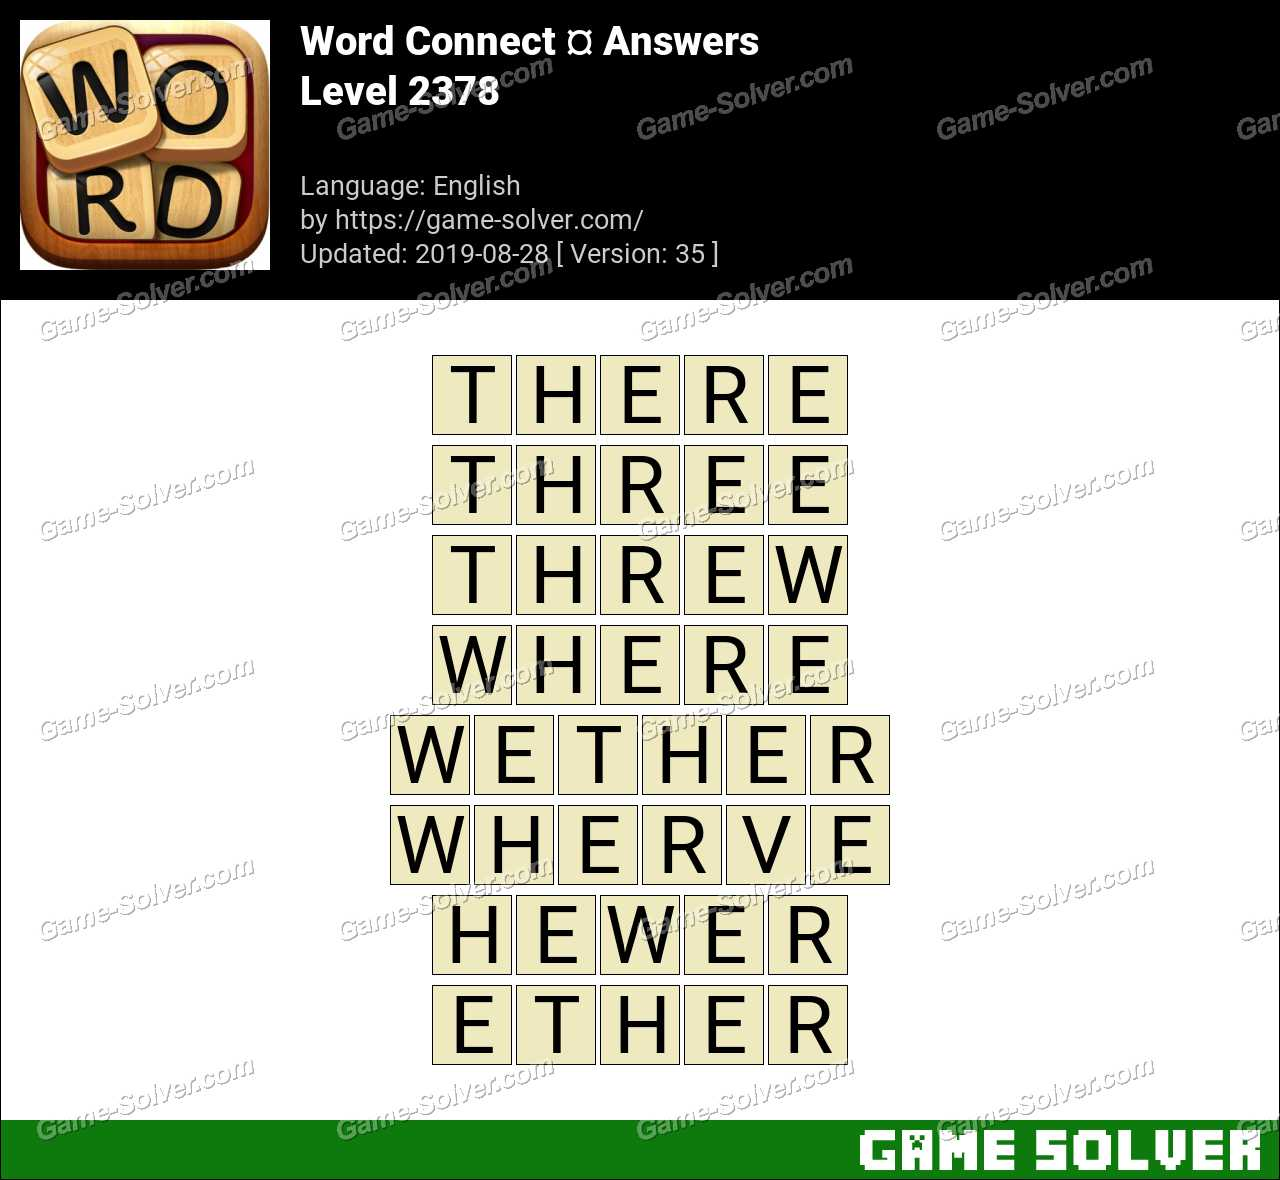 Word Connect Level 2378 Answers